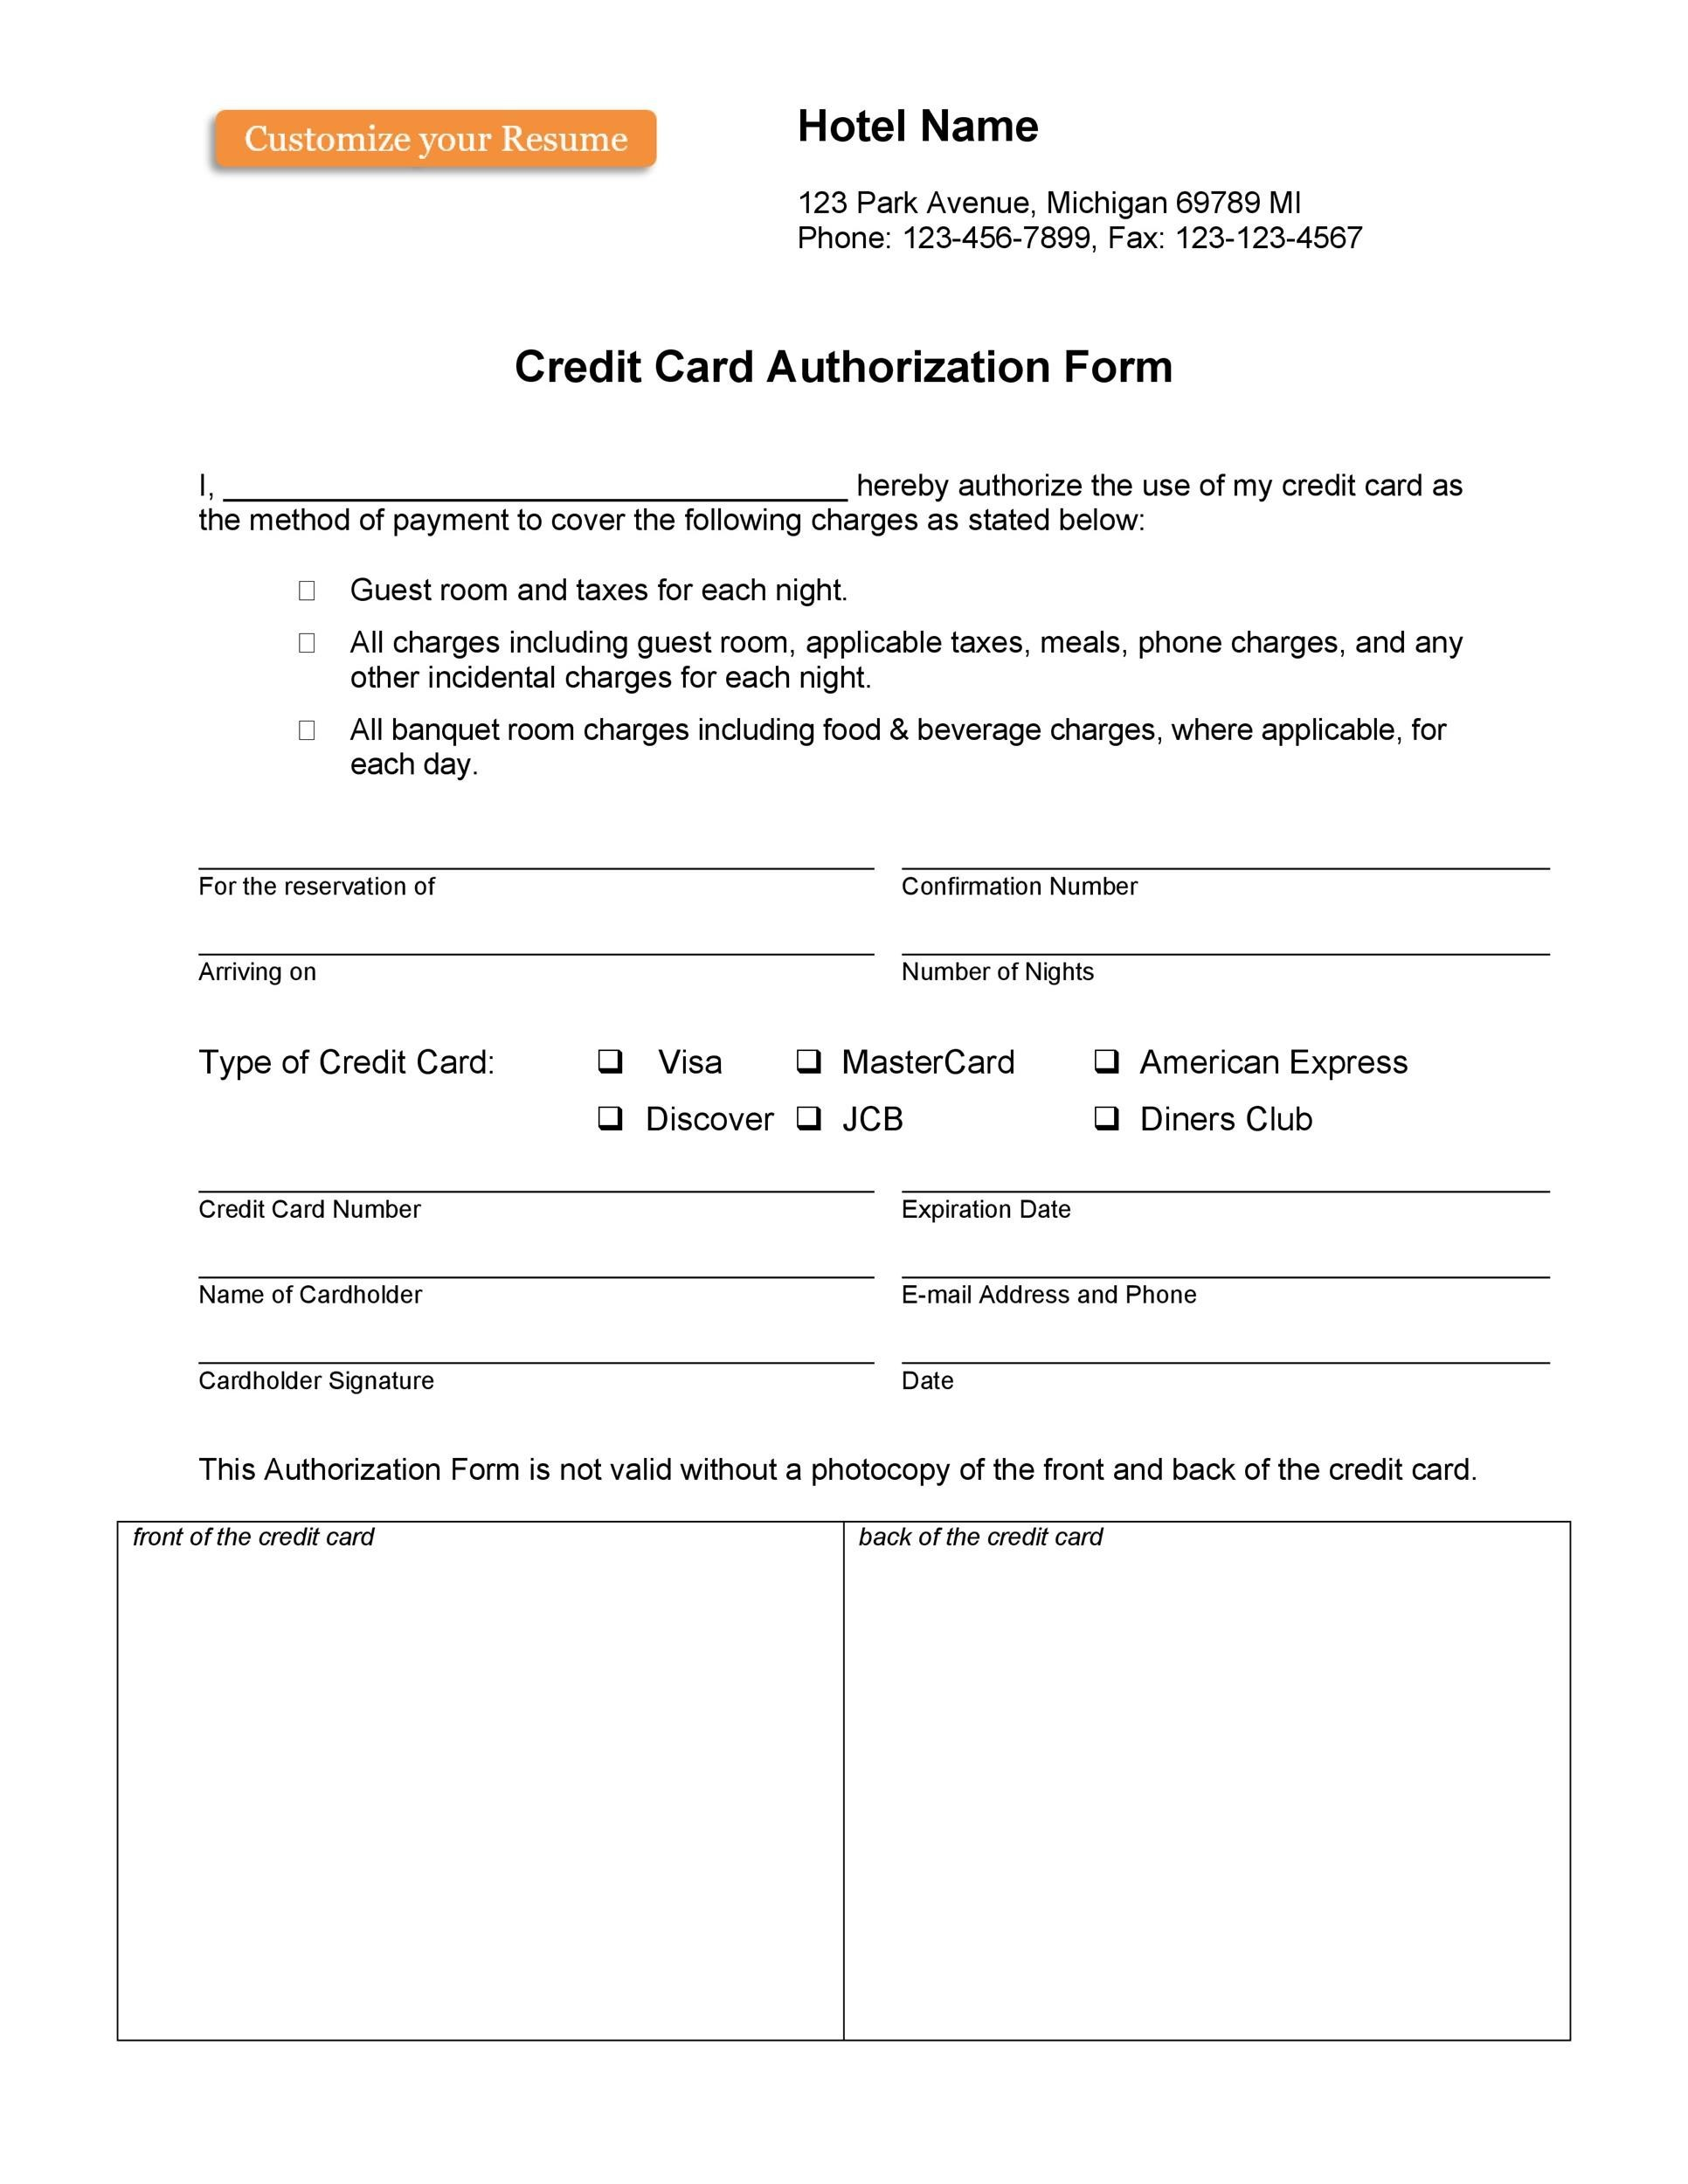 Free credit card authorization form template 34